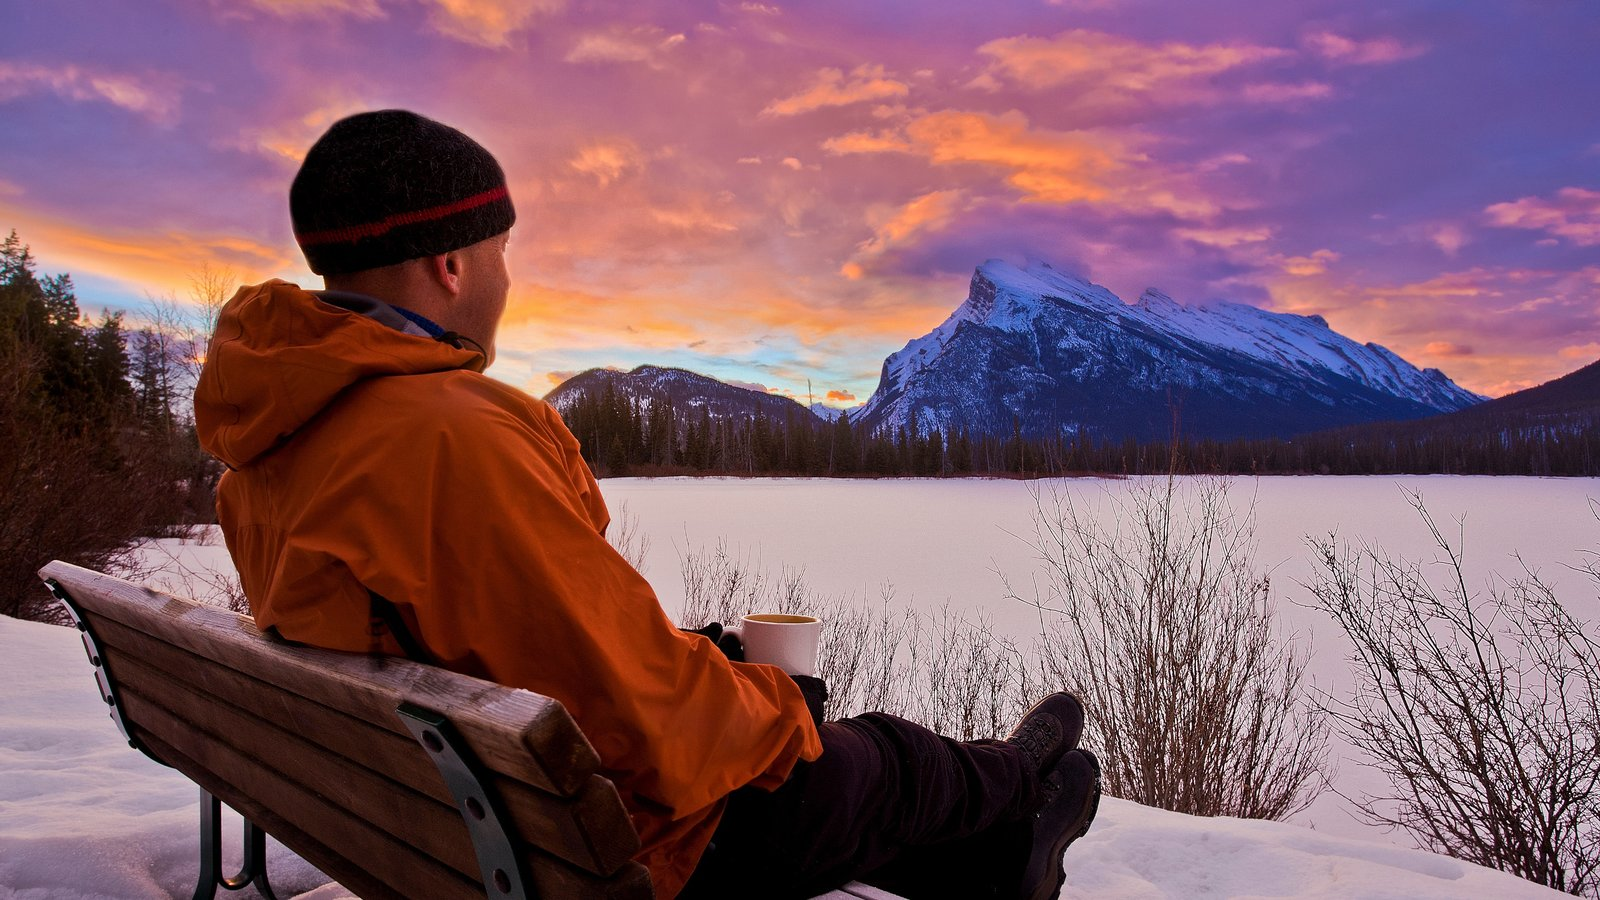 Banff showing a sunset, snow and mountains